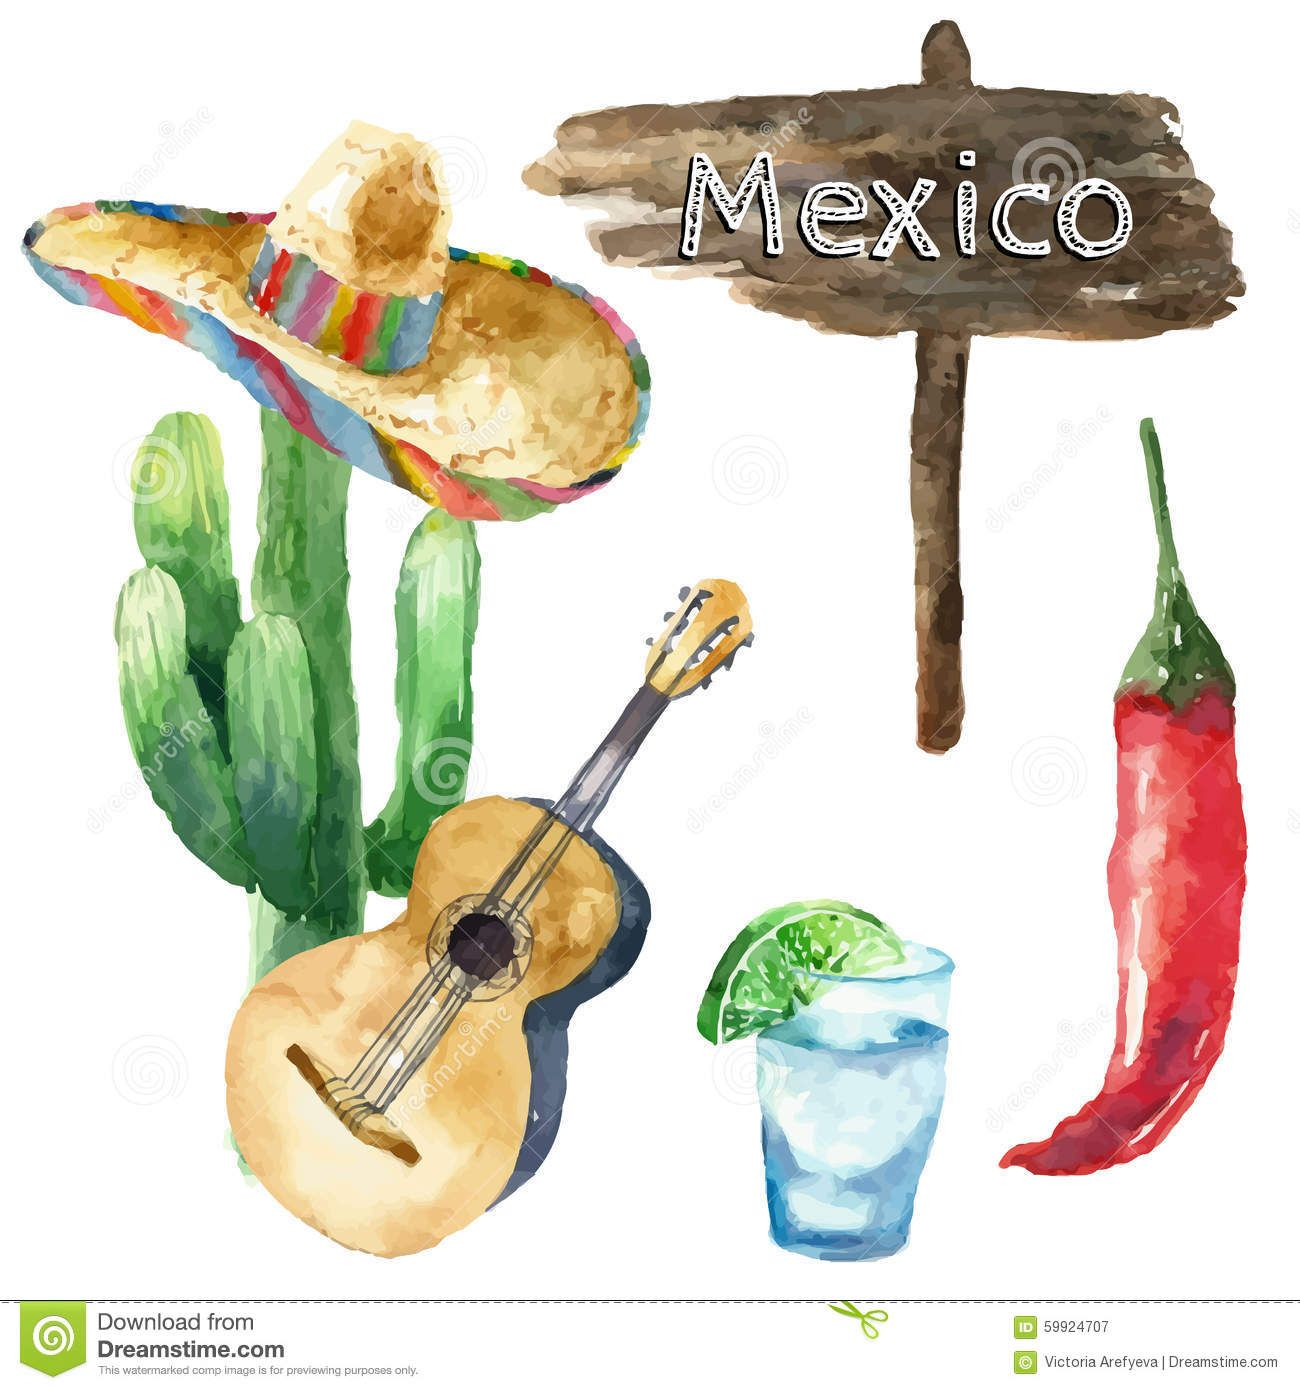 Watercolor Mexico Icons. - Download From Over 44 Million High Quality Stock Photos, Images, Vectors. Sign up for FREE today. Image: 59924707